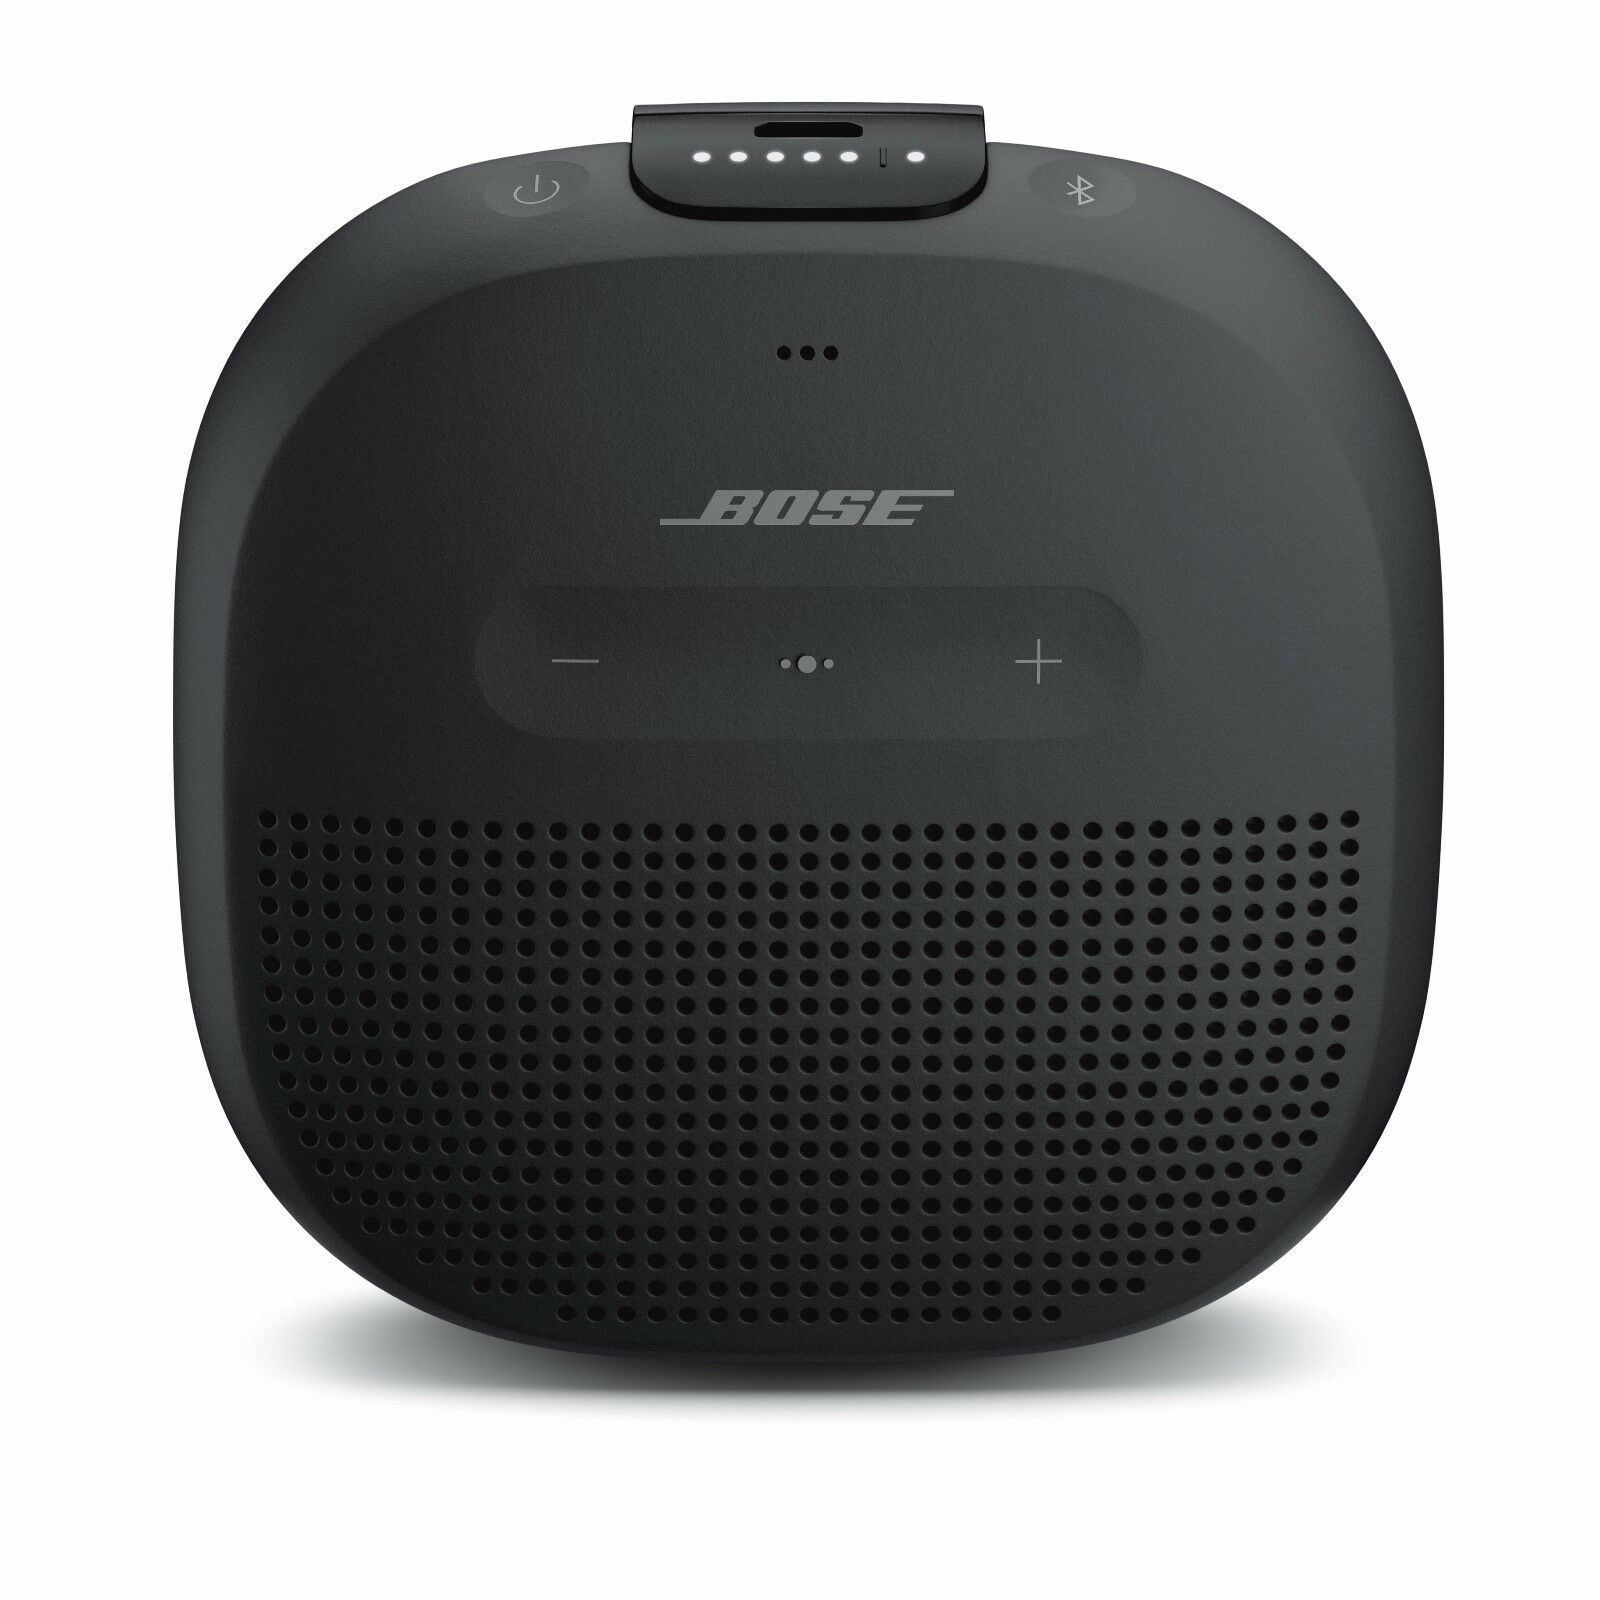 bose 416776. bose soundlink micro bluetooth speaker - wireless portable sound black bose 416776 e